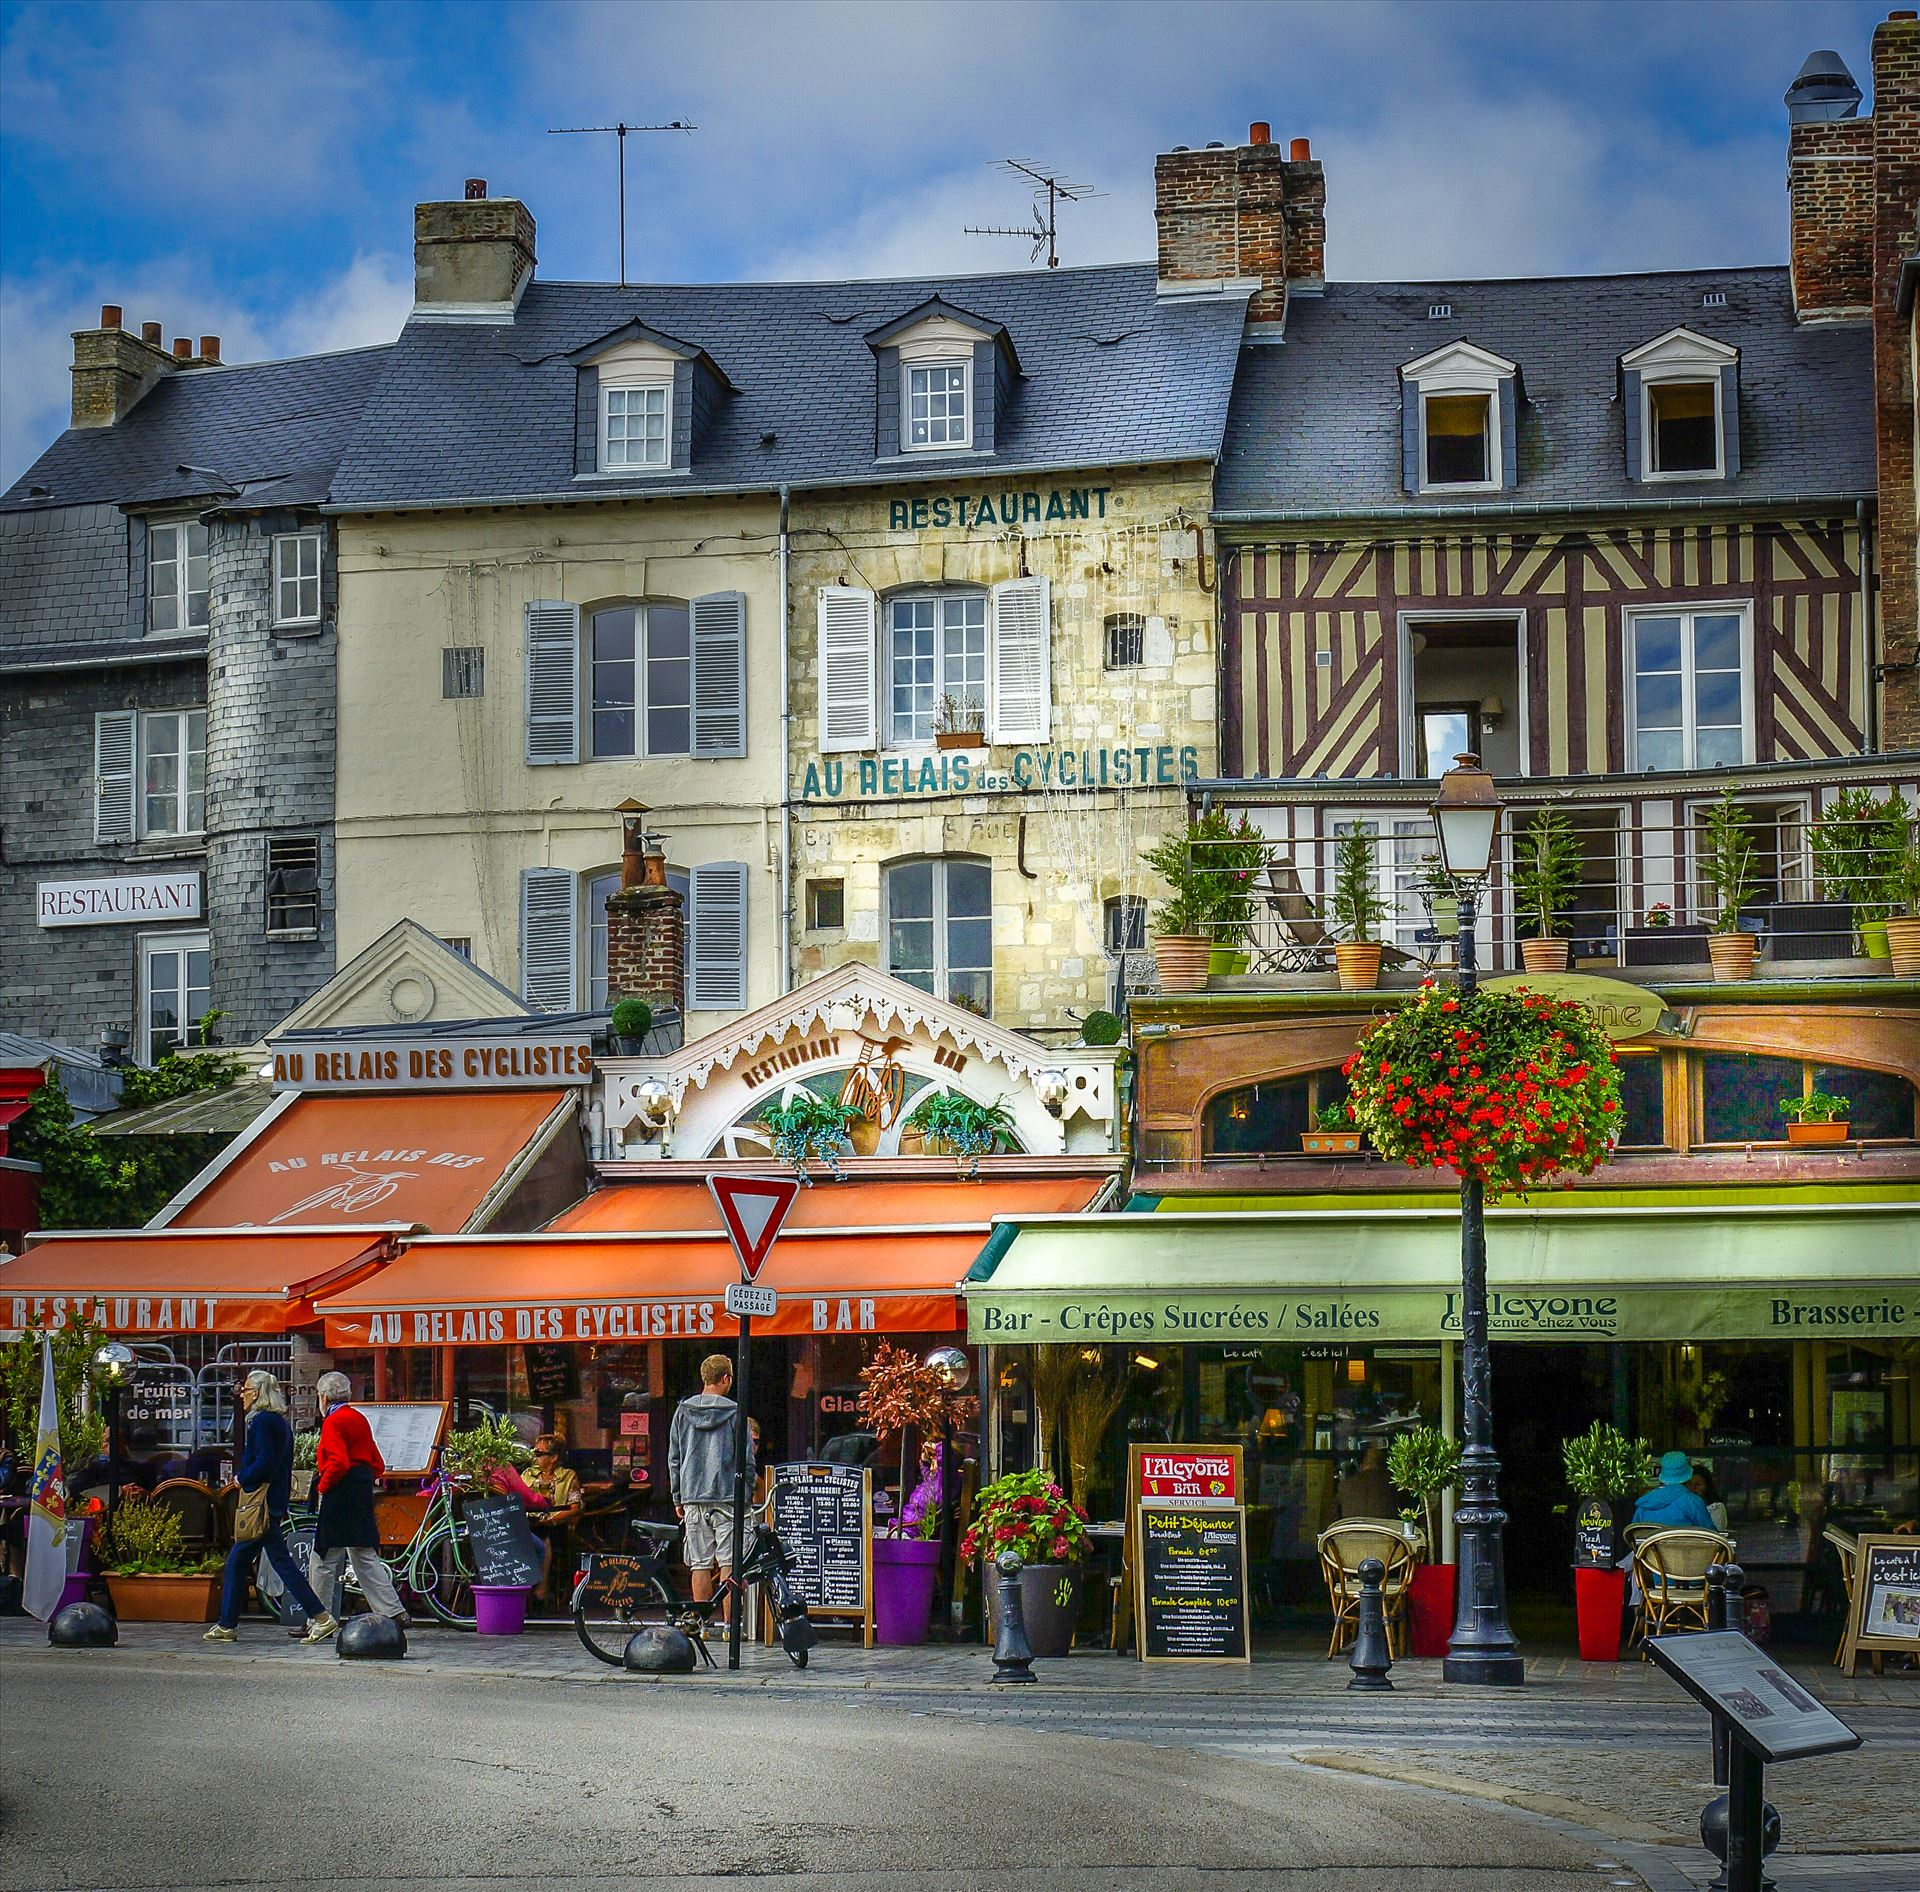 Shops In Honfleur, France - I'Alcyone Creperie at 8, place de la Porte de Rouen, 14600, Honfleur, France by Buckmaster